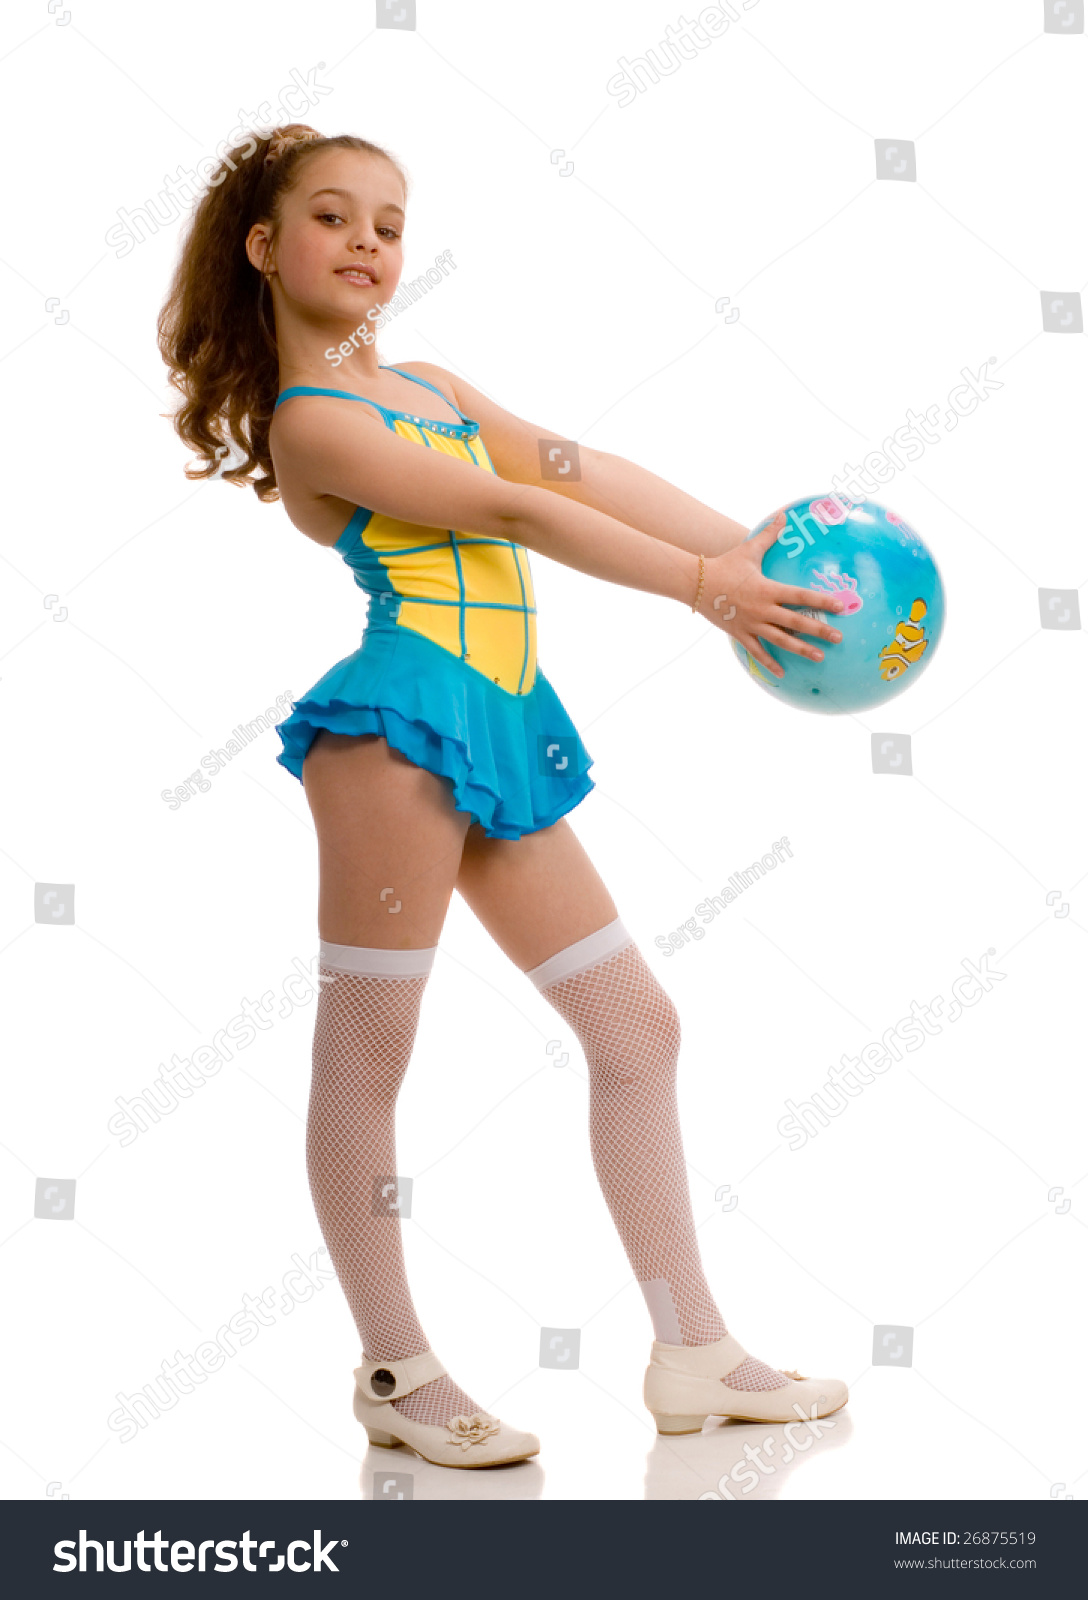 gymnastic girl Cute girl with a gymnastic ball in her hands, isolated on white background